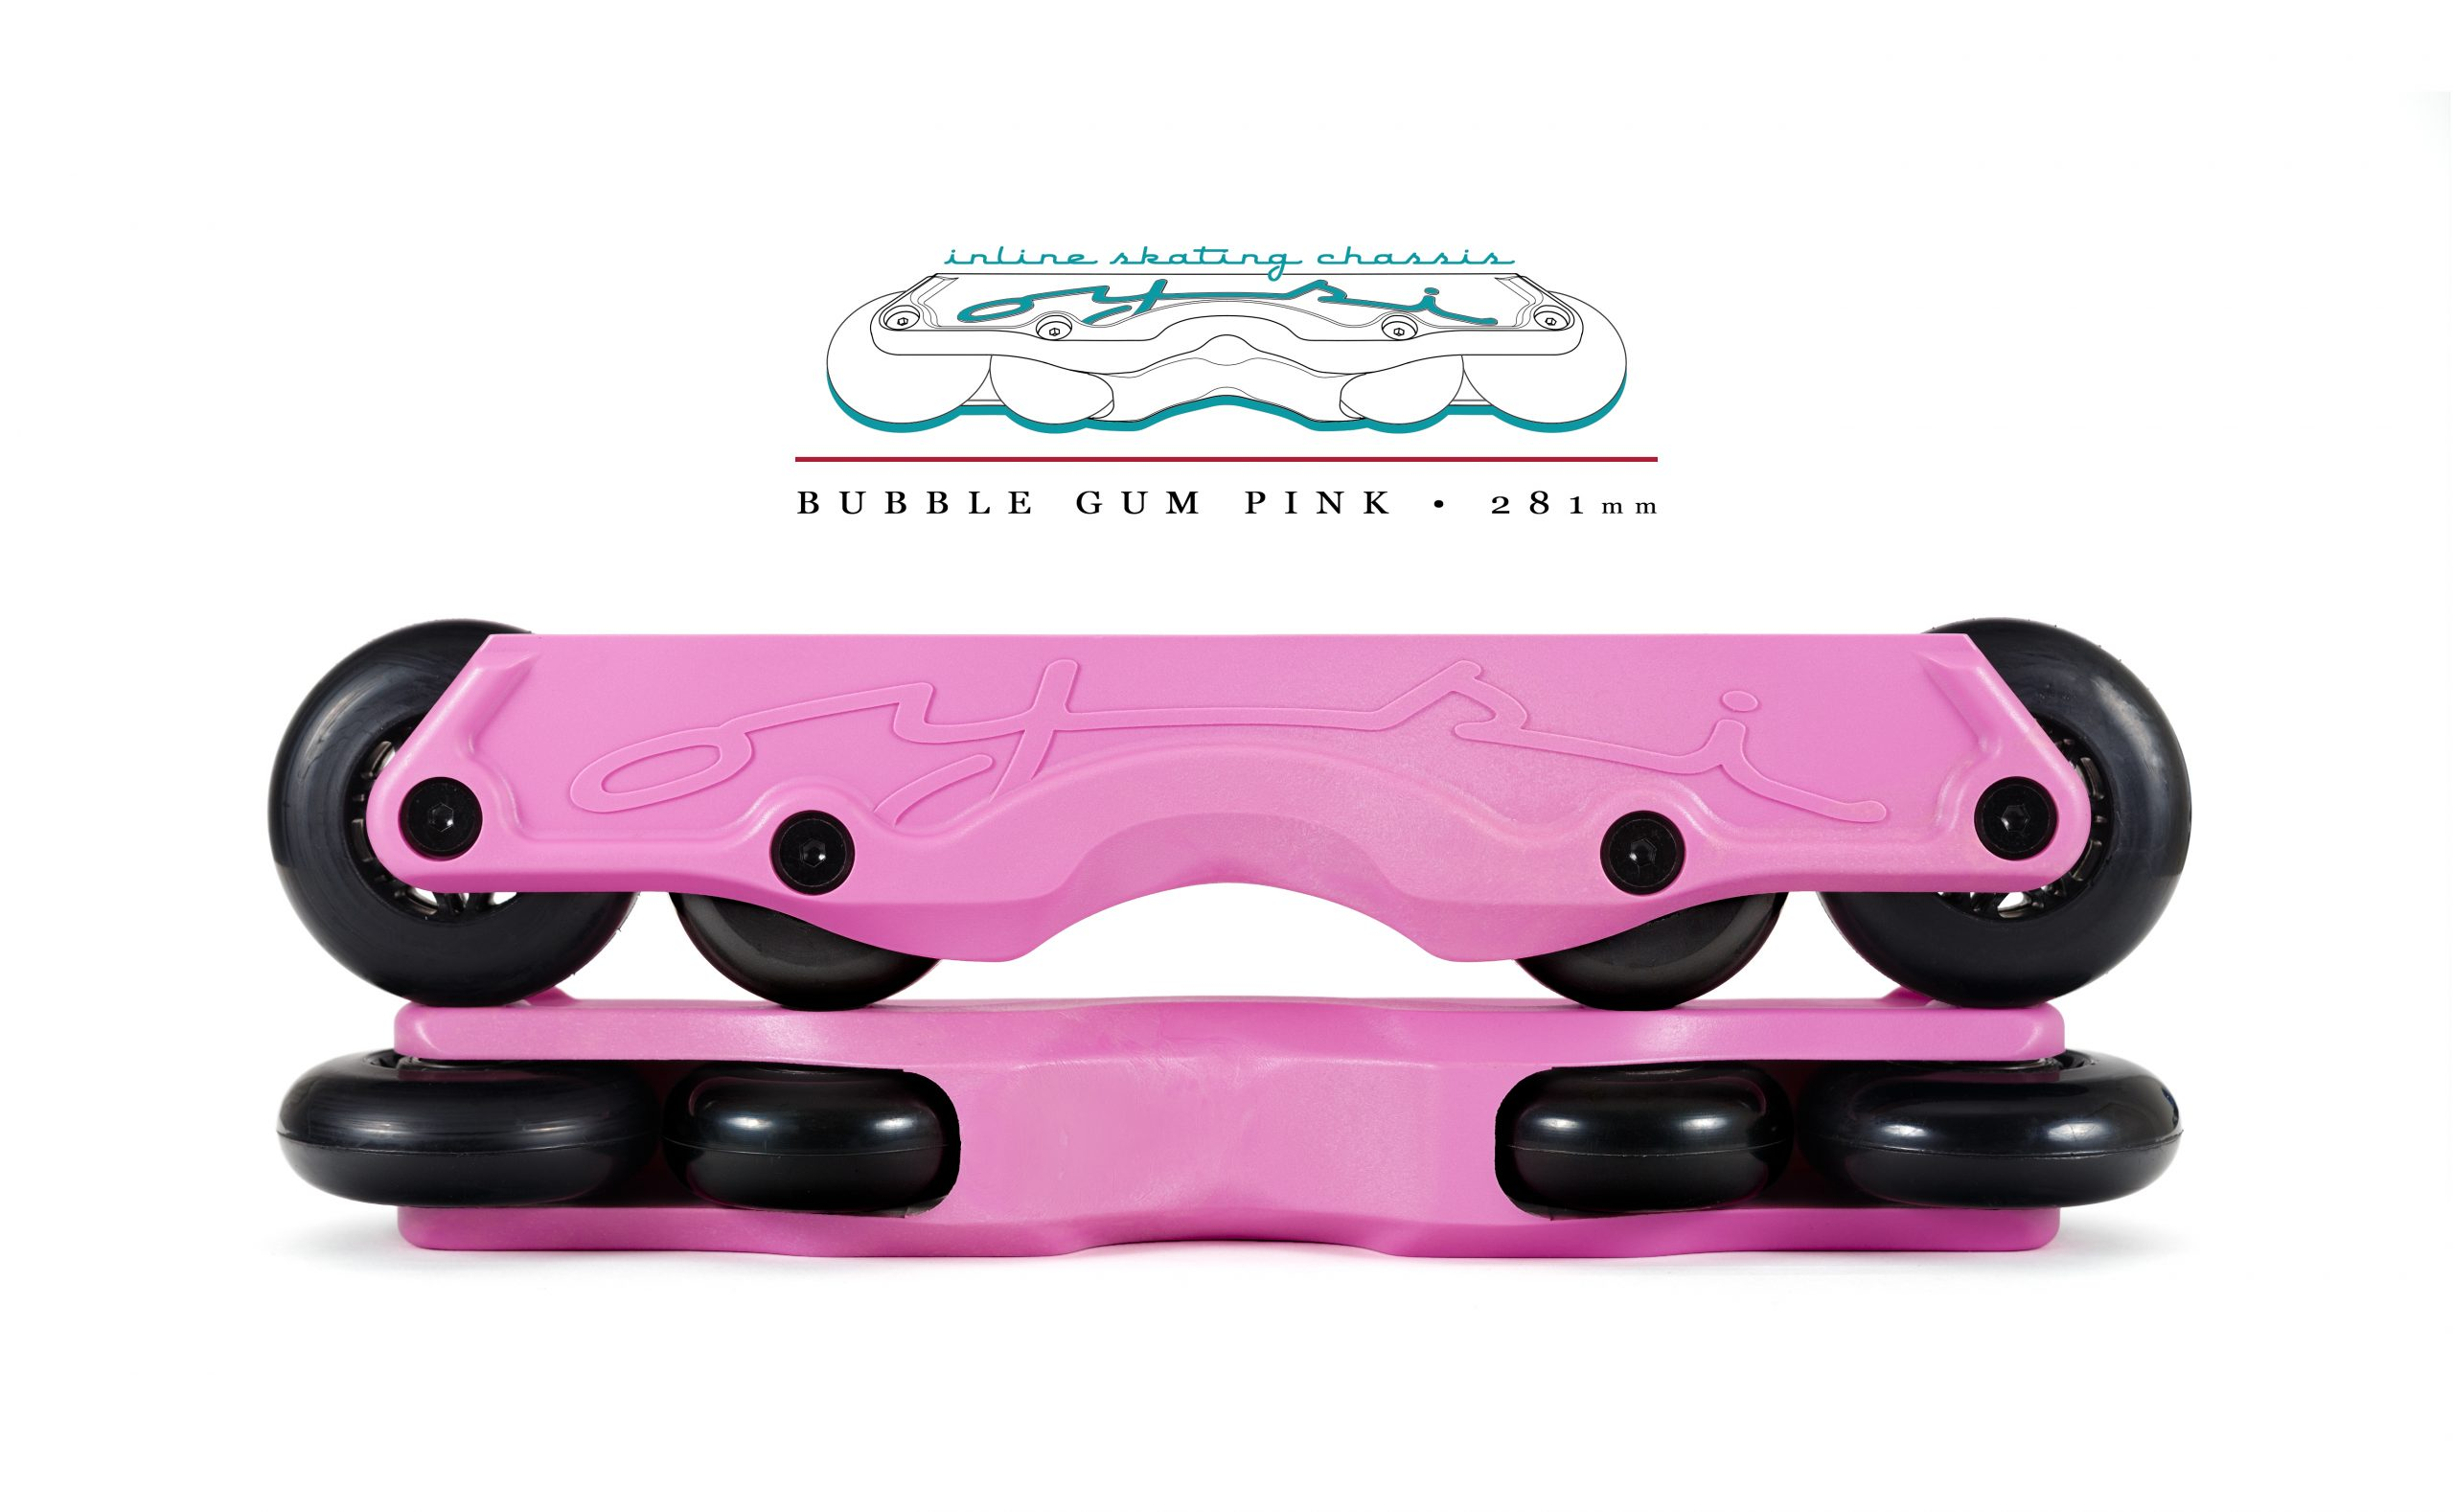 OISC Oysi Inline Skating Chassis 72mm  Bubble Gum Pink